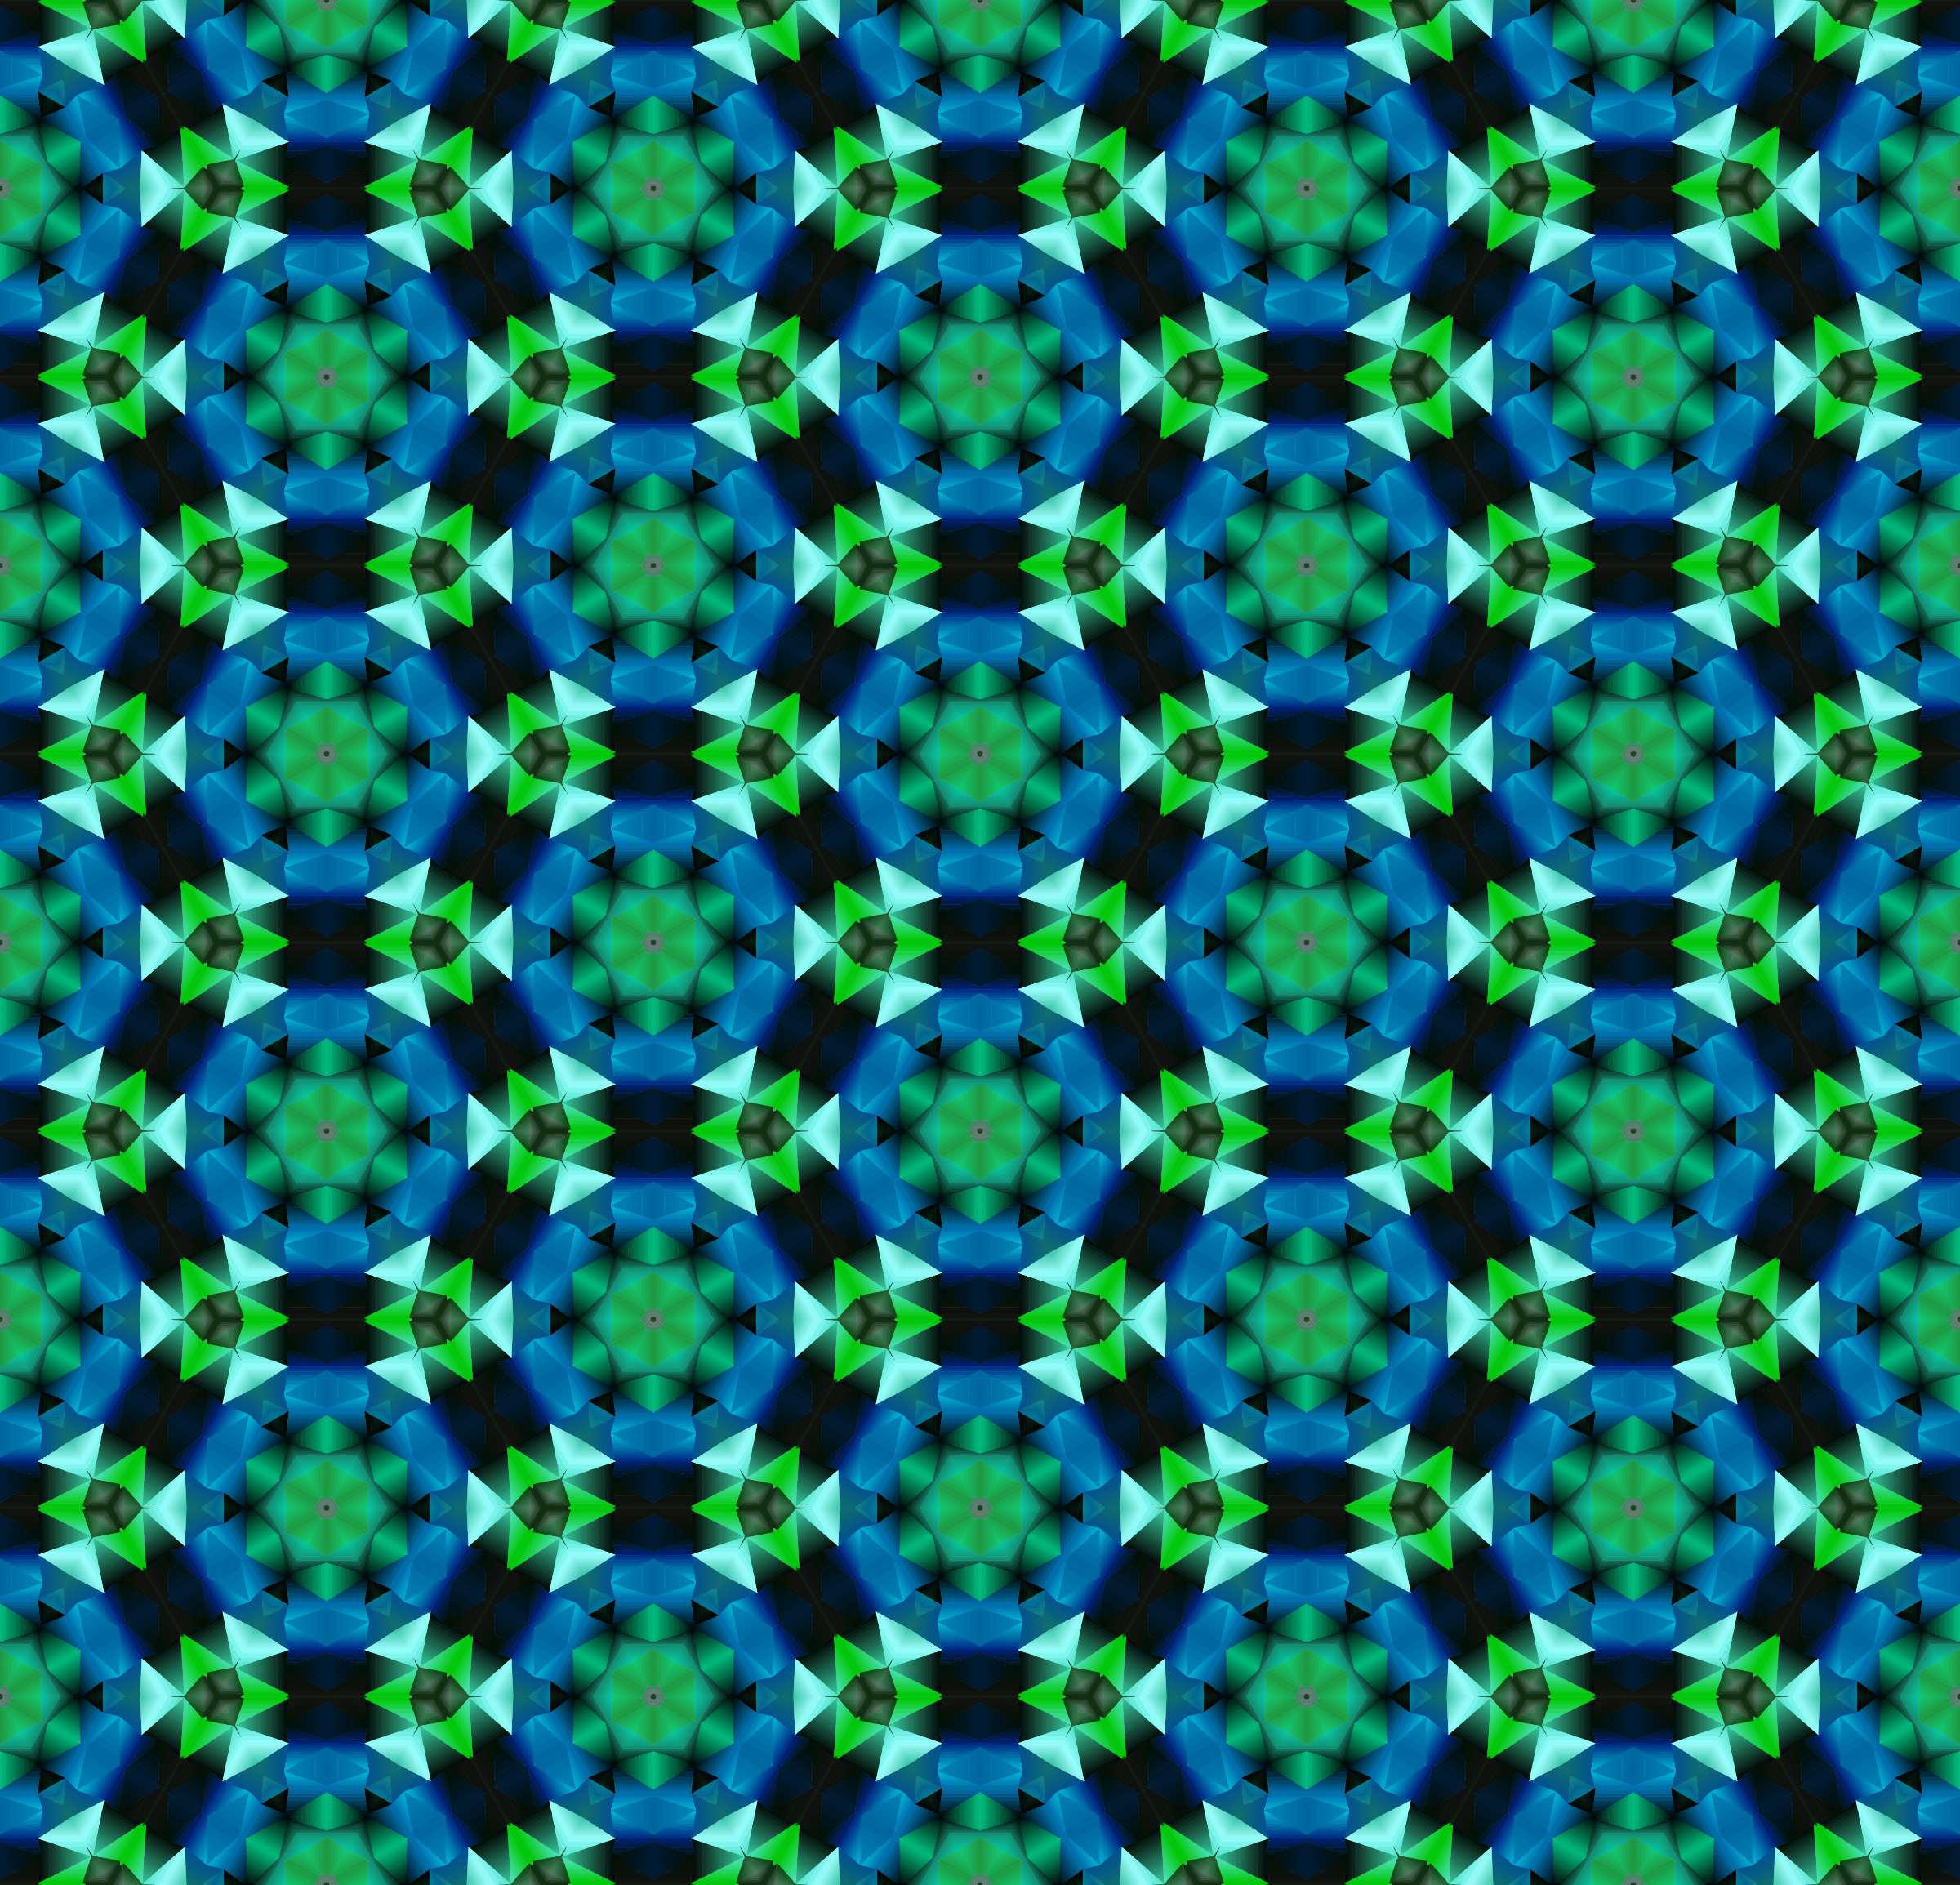 Background pattern 141 (colour 2) by Firkin